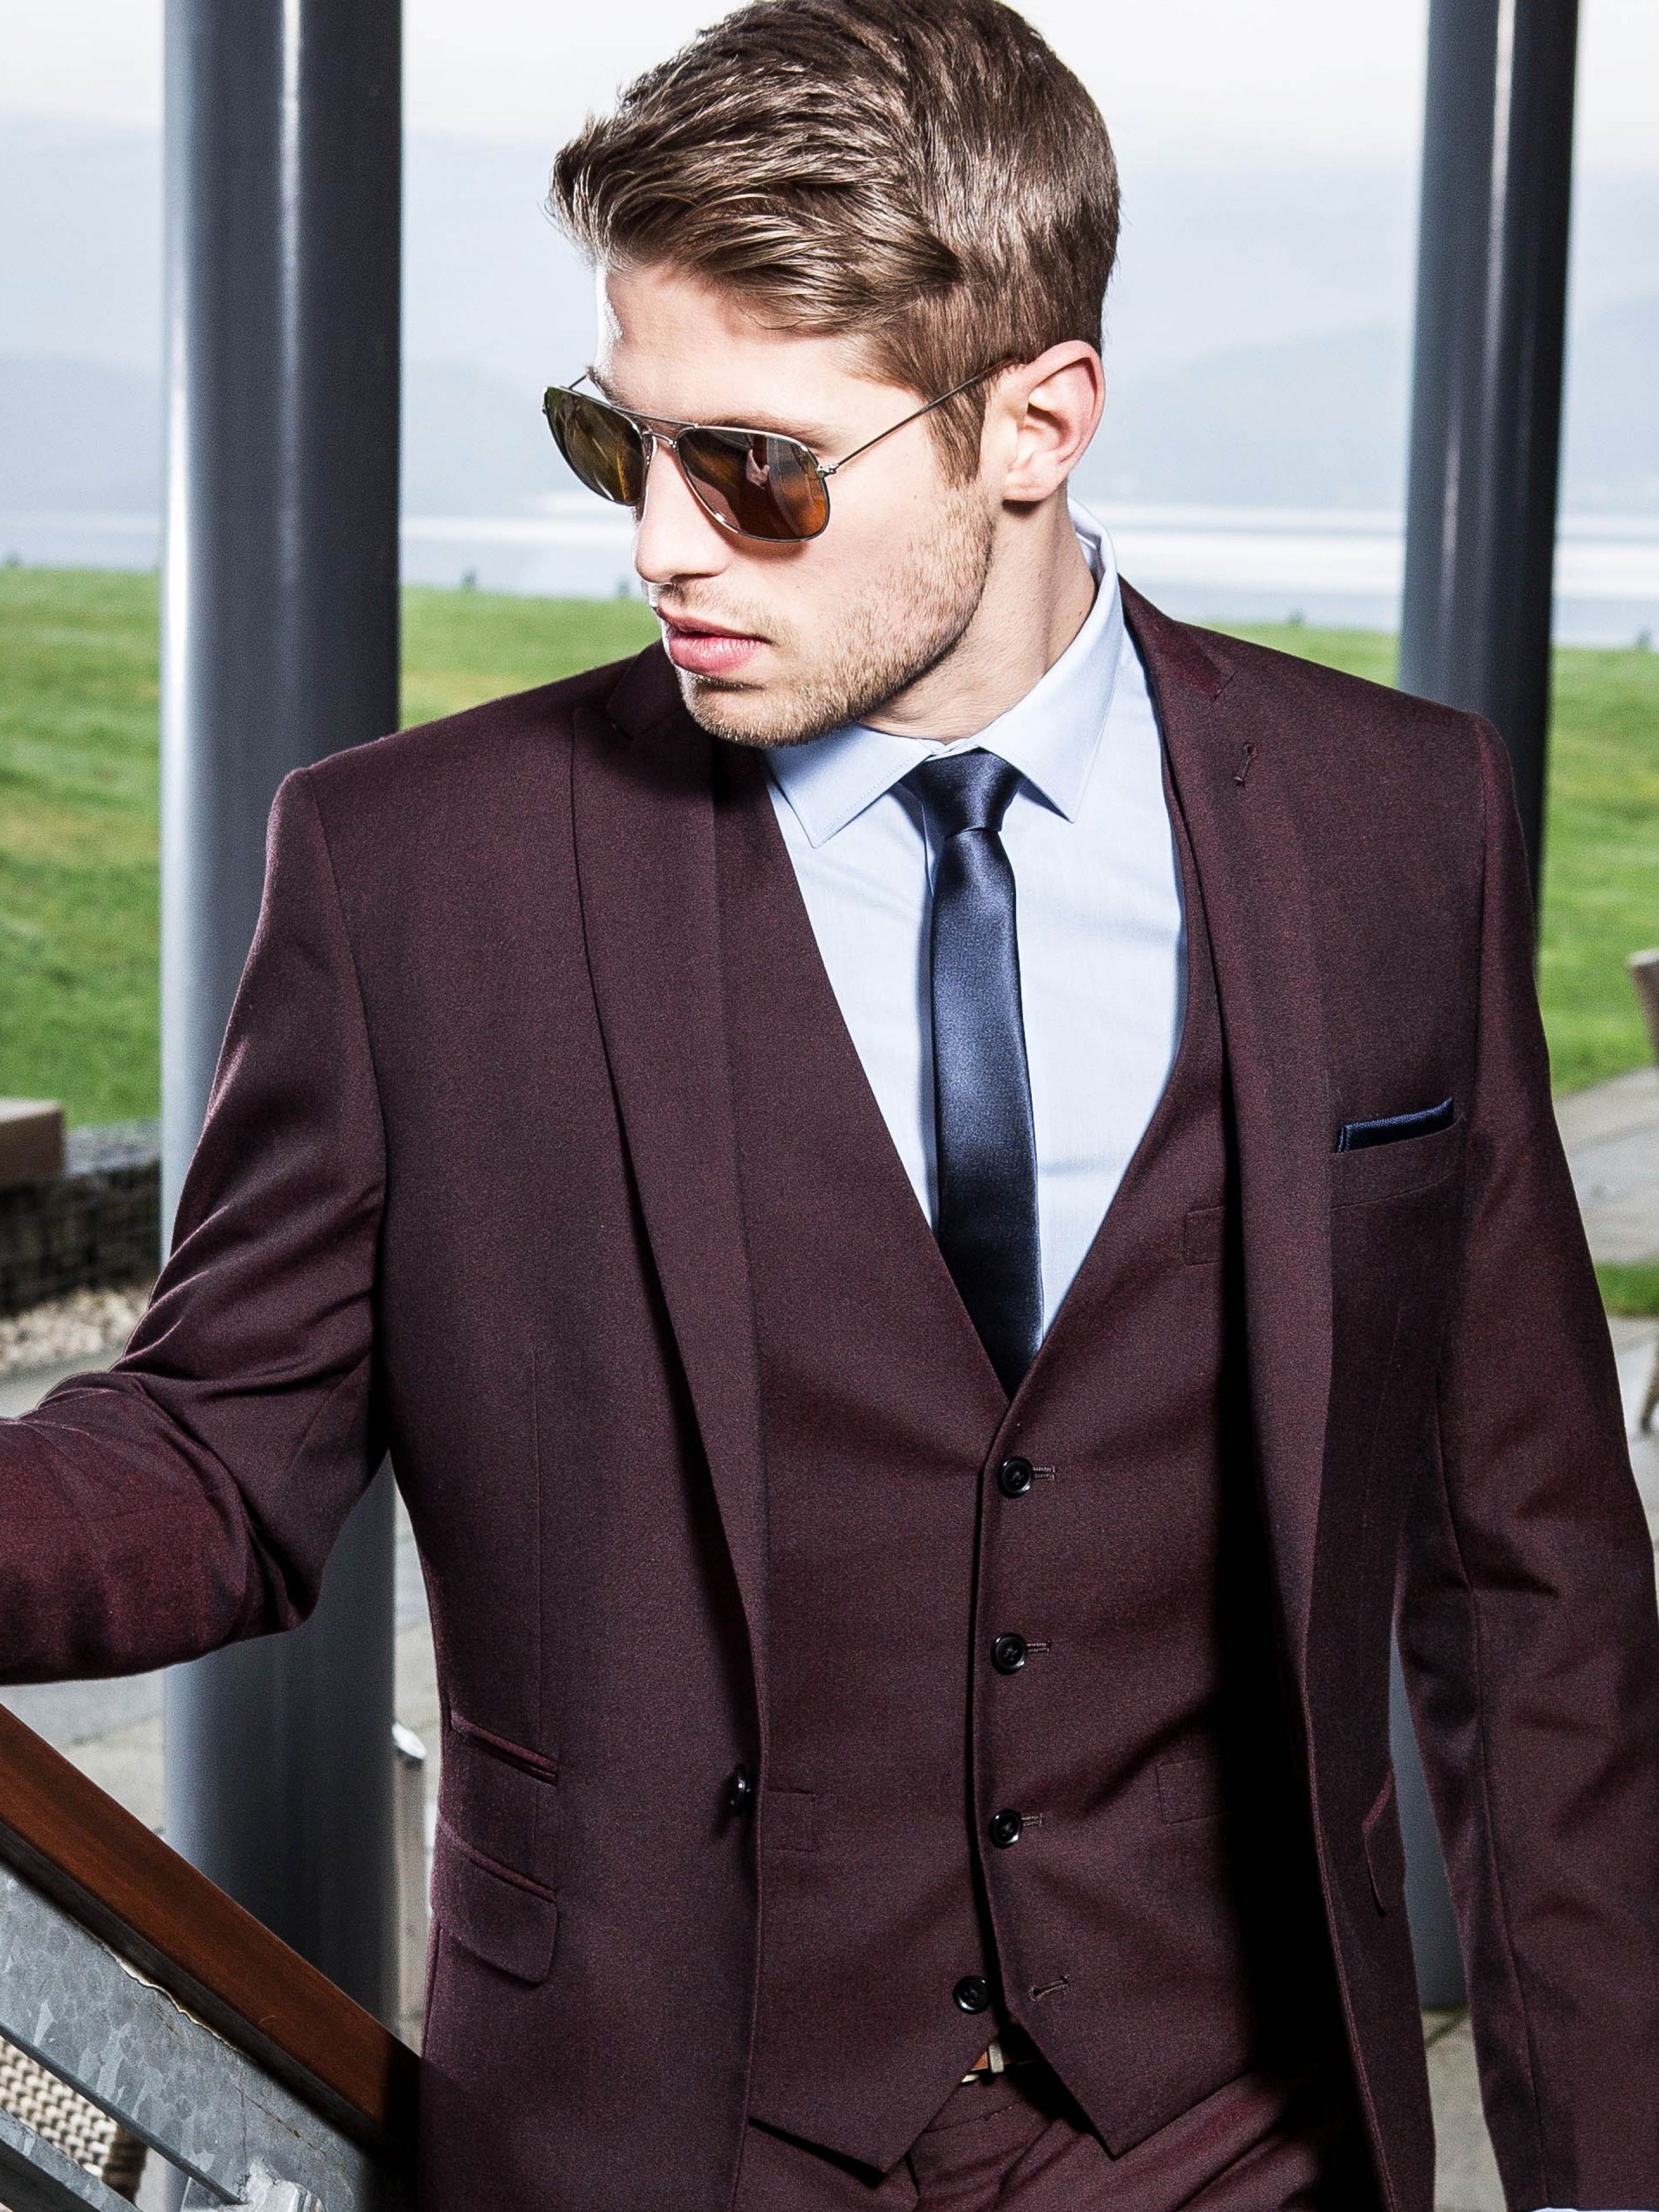 9400a67f206 Mens Burgundy Three Piece Suit - Burgundy Slim Fit Suits